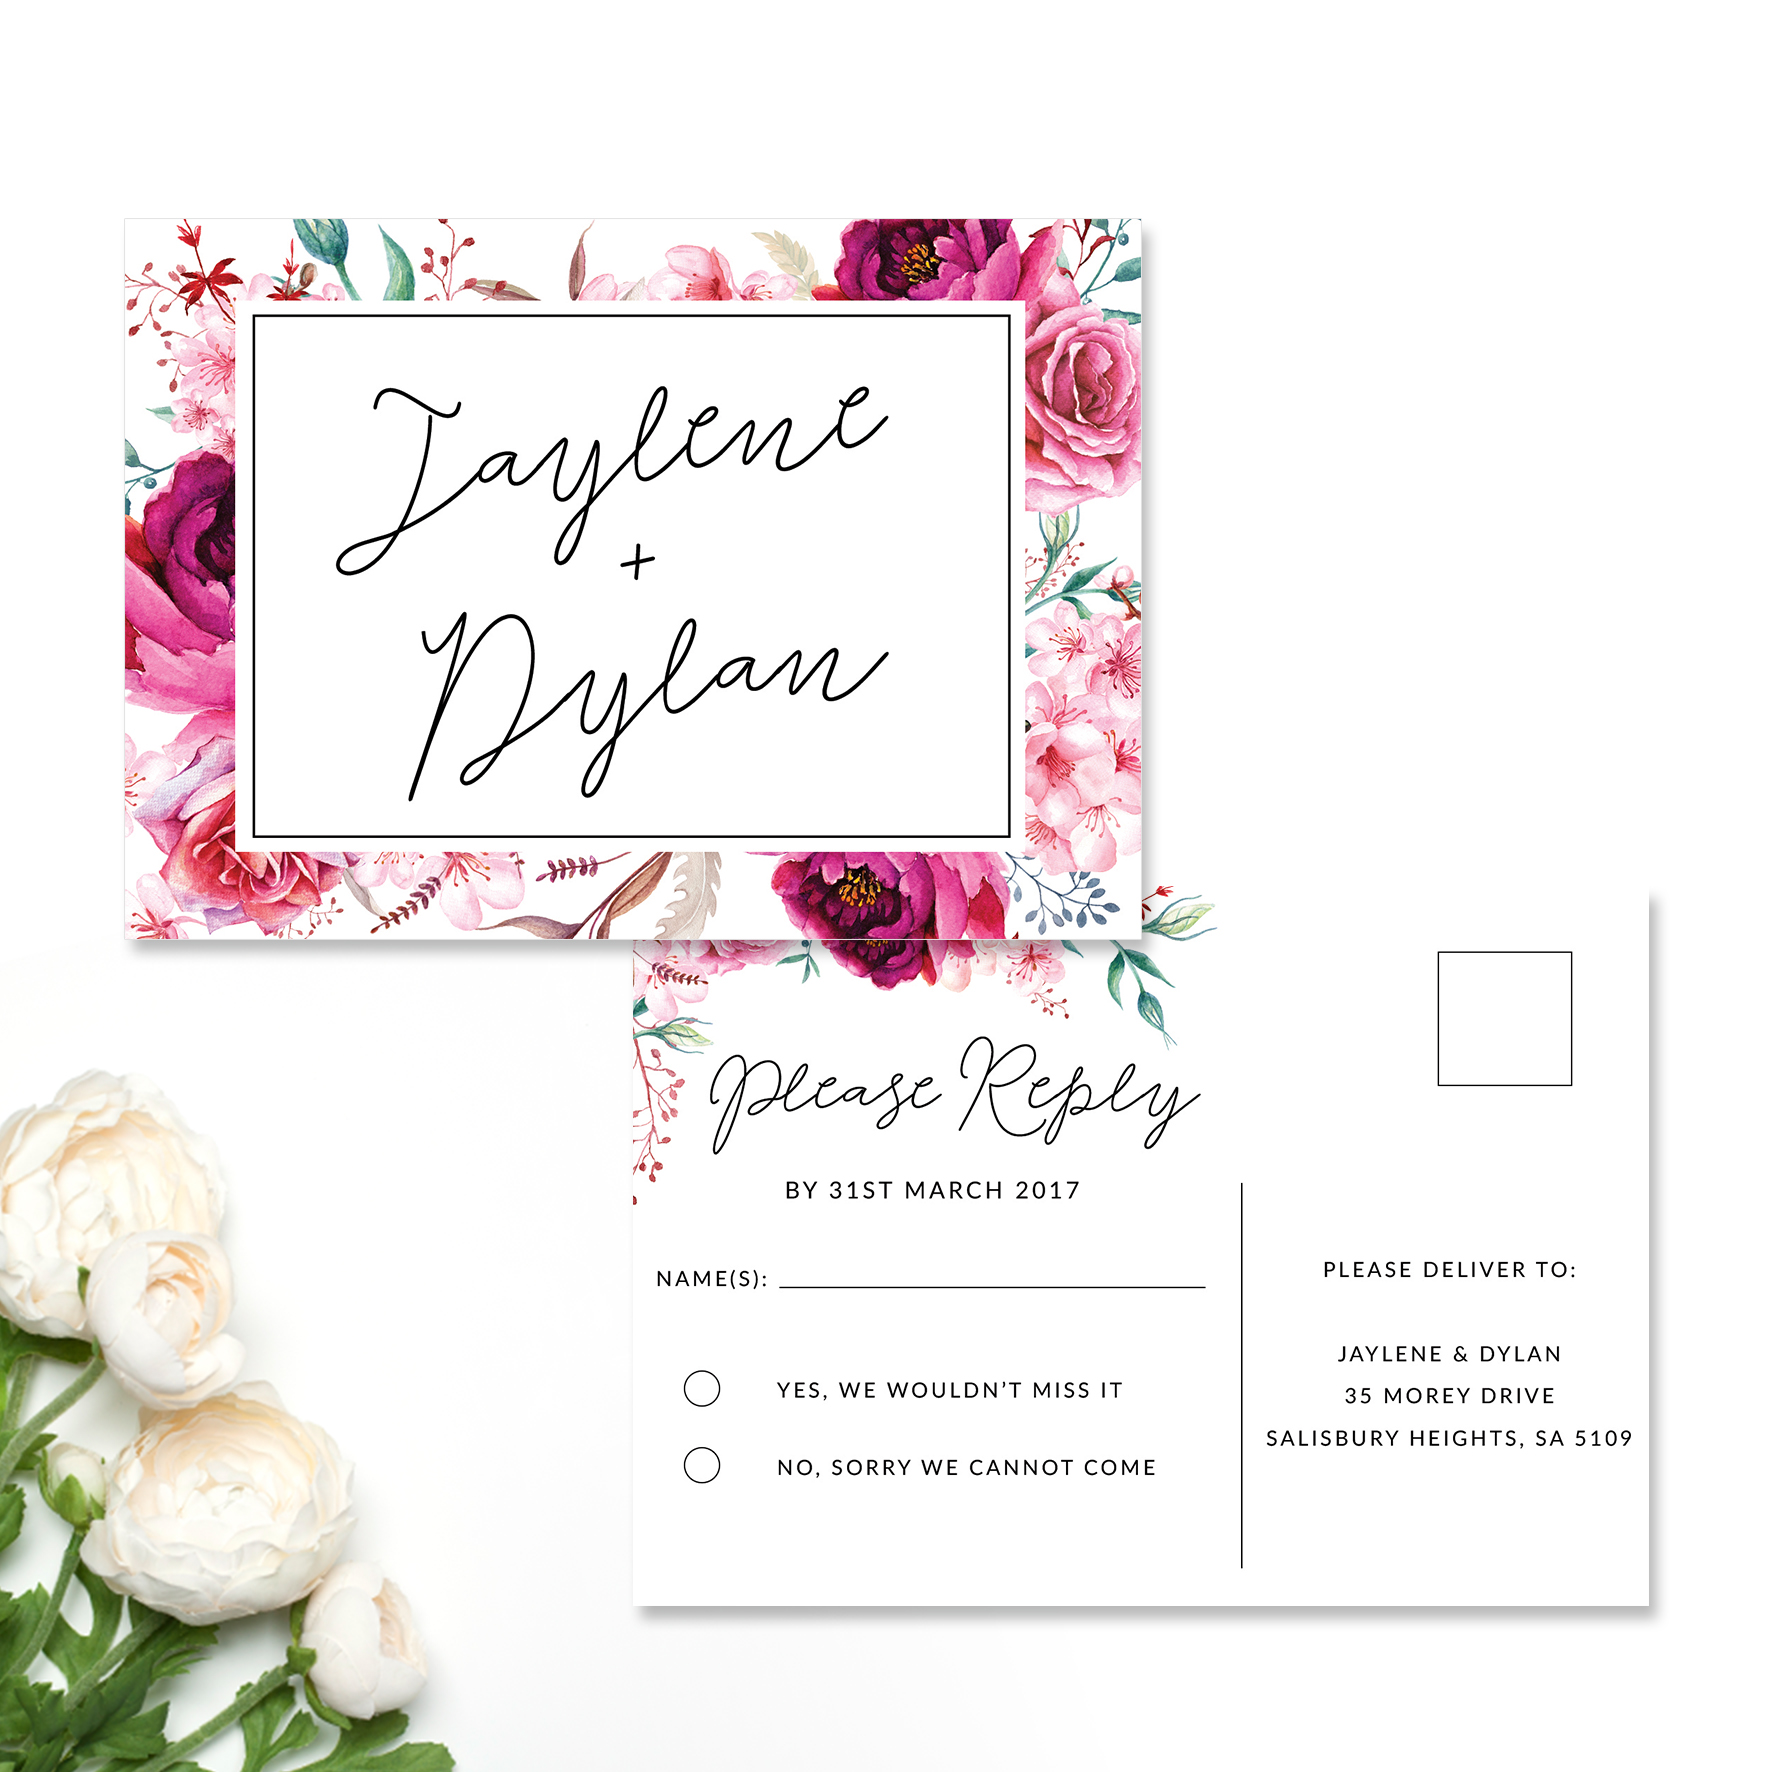 Jaylene + Dylan Reply Card